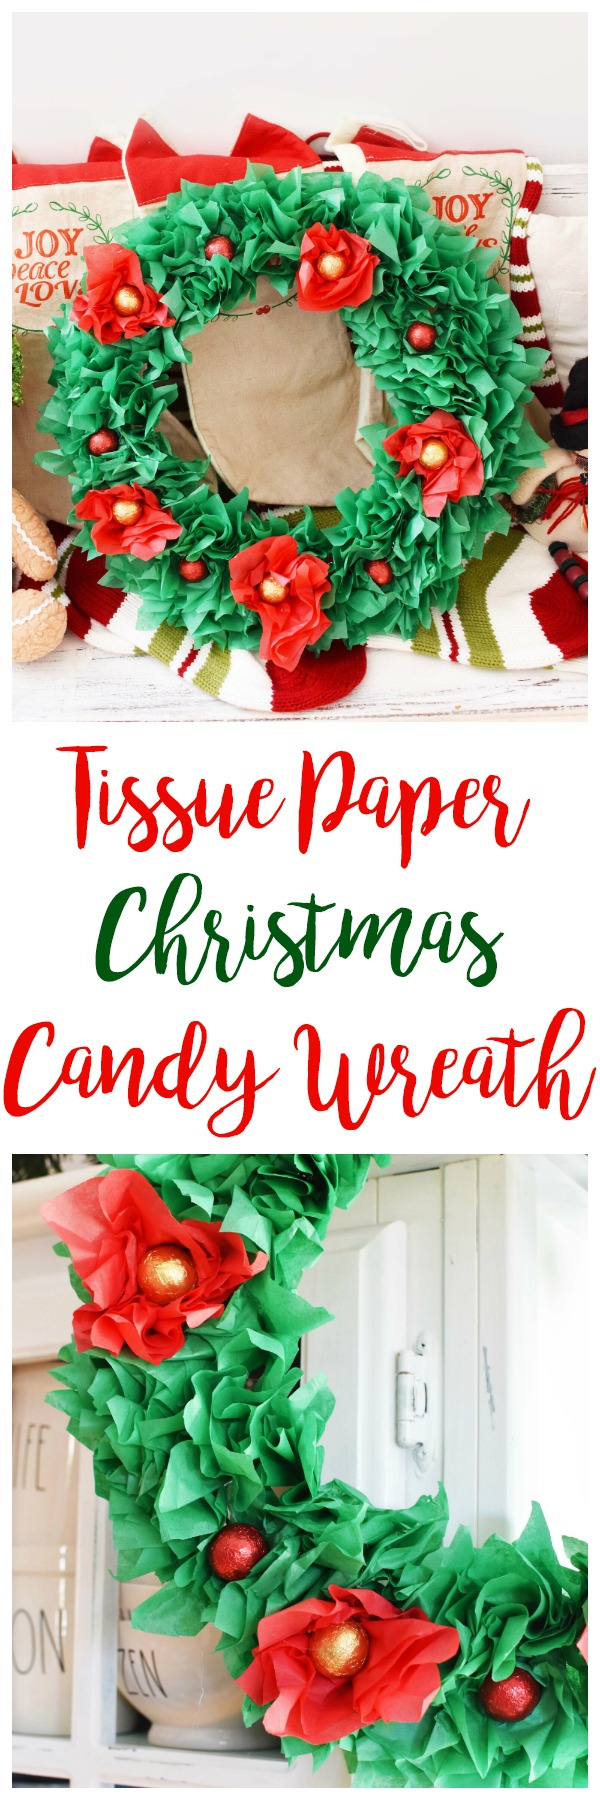 Tissue Paper Christmas Candy Wreath. This holiday wreath is made from tissue paper and features Palmer's Chocolate Caramel foil balls. The total cost to make it was only $3!!! Make this wreath with products you can find at your local dollar store or retailer.